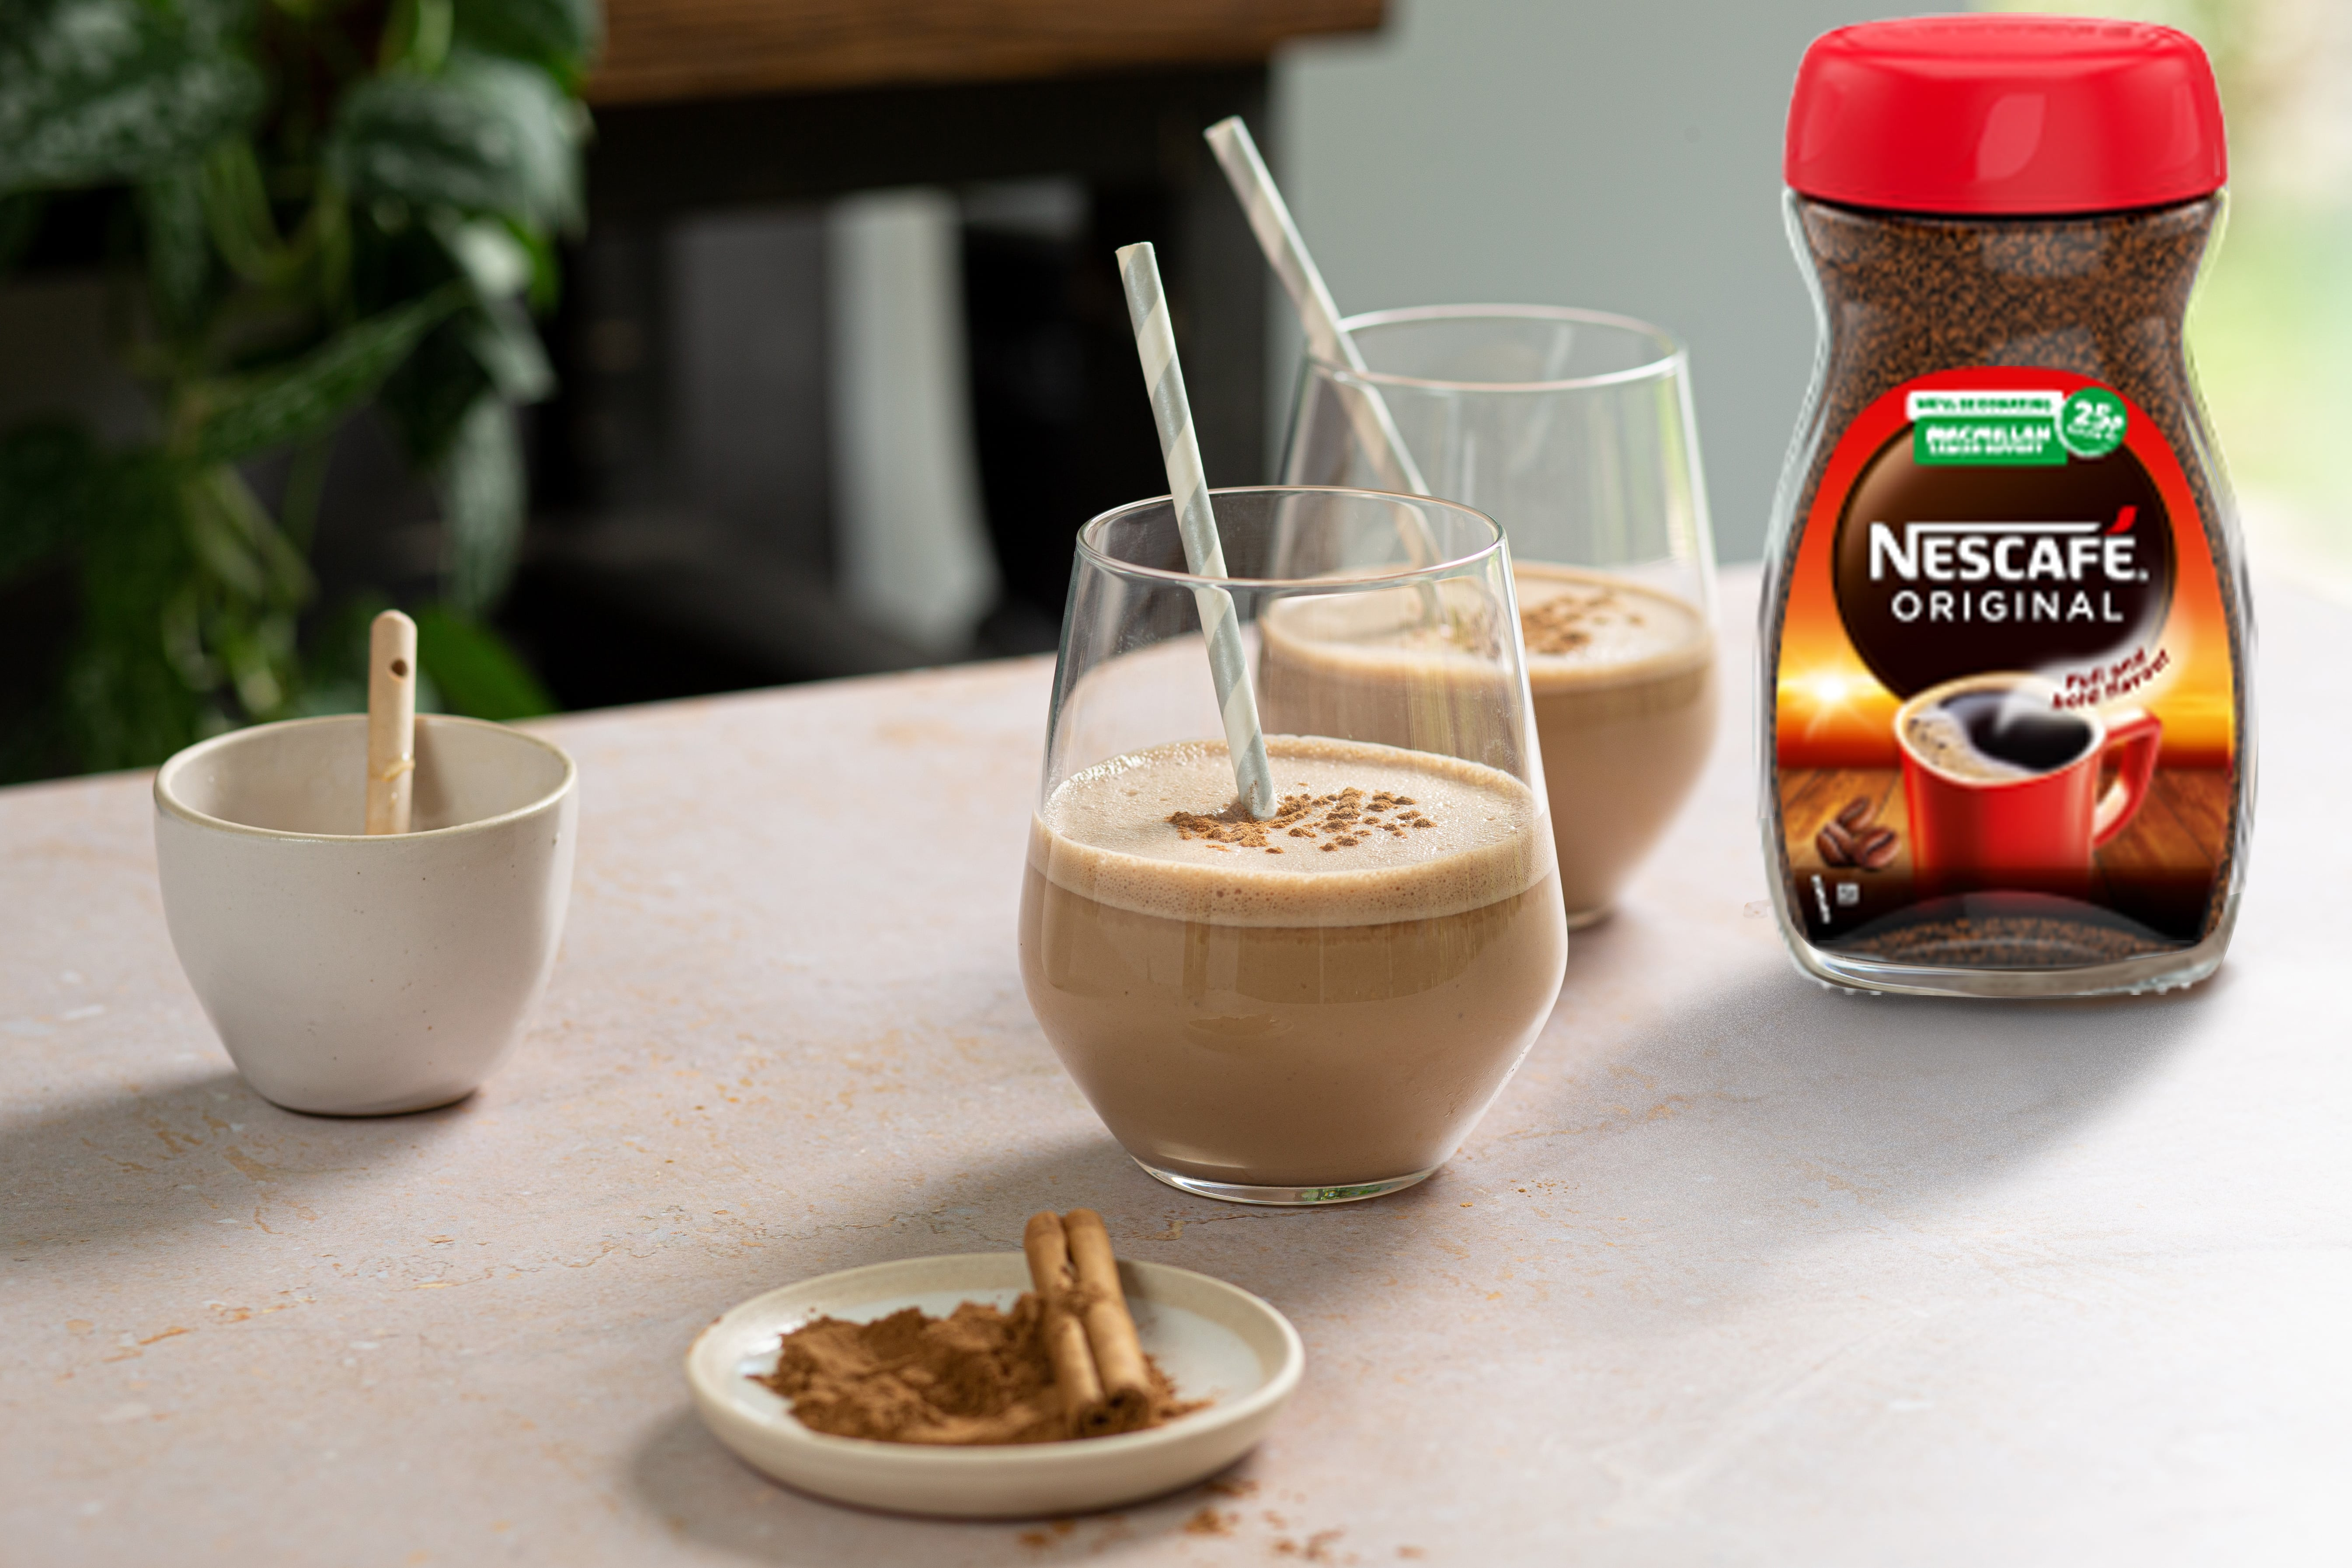 Two glasses of coffee smoothie with a straw. Nescafe original jar is next to the smoothies.